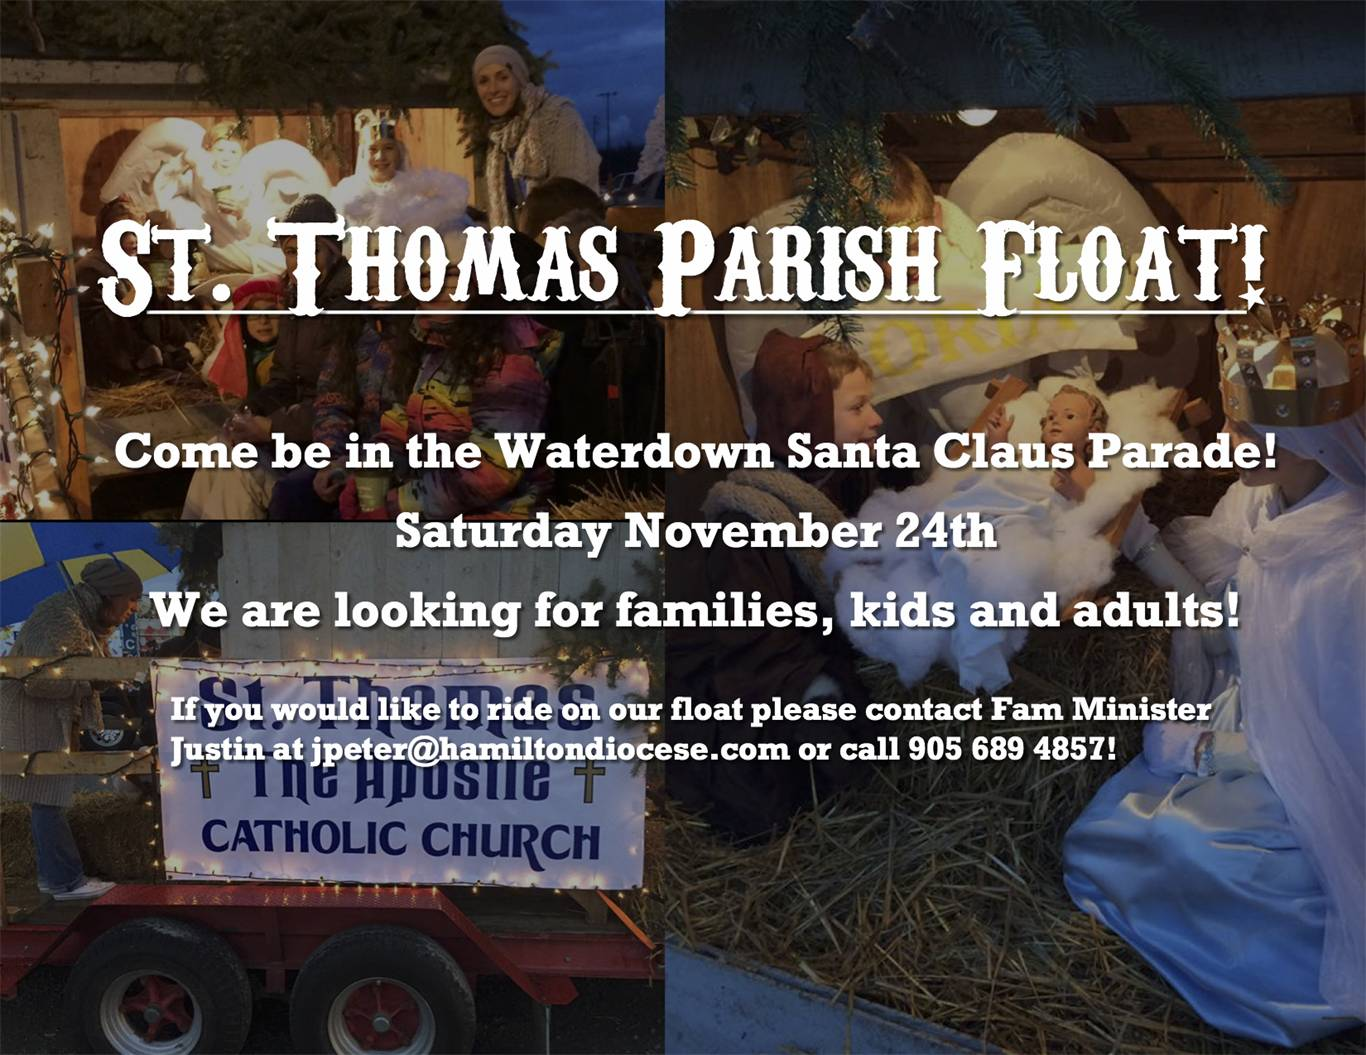 ST. THOMAS PARISH FLOAT FOR THE SANTA CLAUS PARADE!